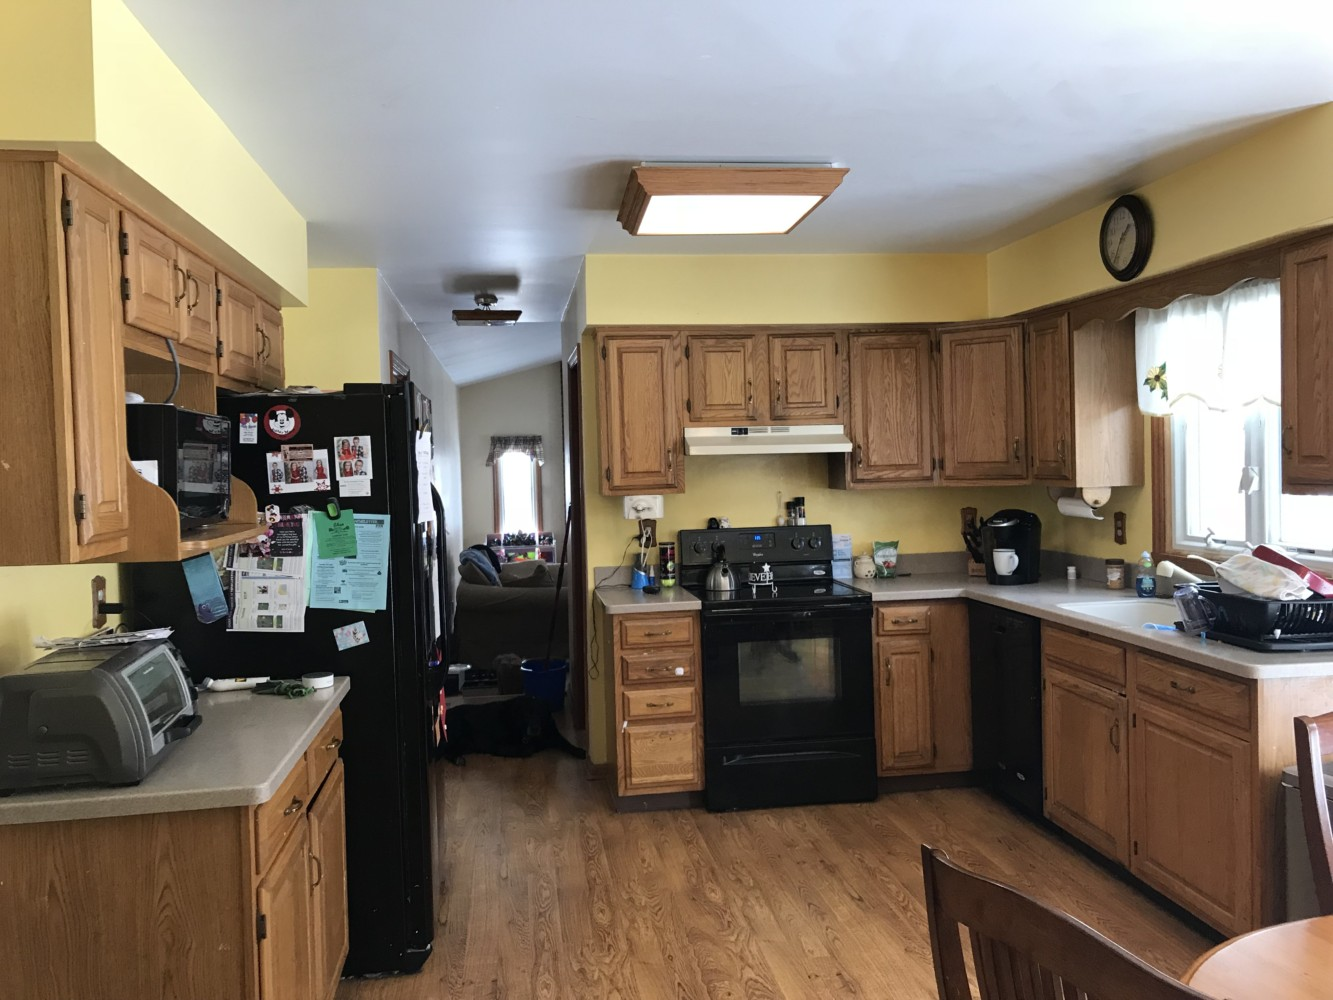 We Decided To Go With A Medium Gray On The Cabinets And Lighten Up Walls Lighter Then They Added New Backsplash Which I Think Helped This